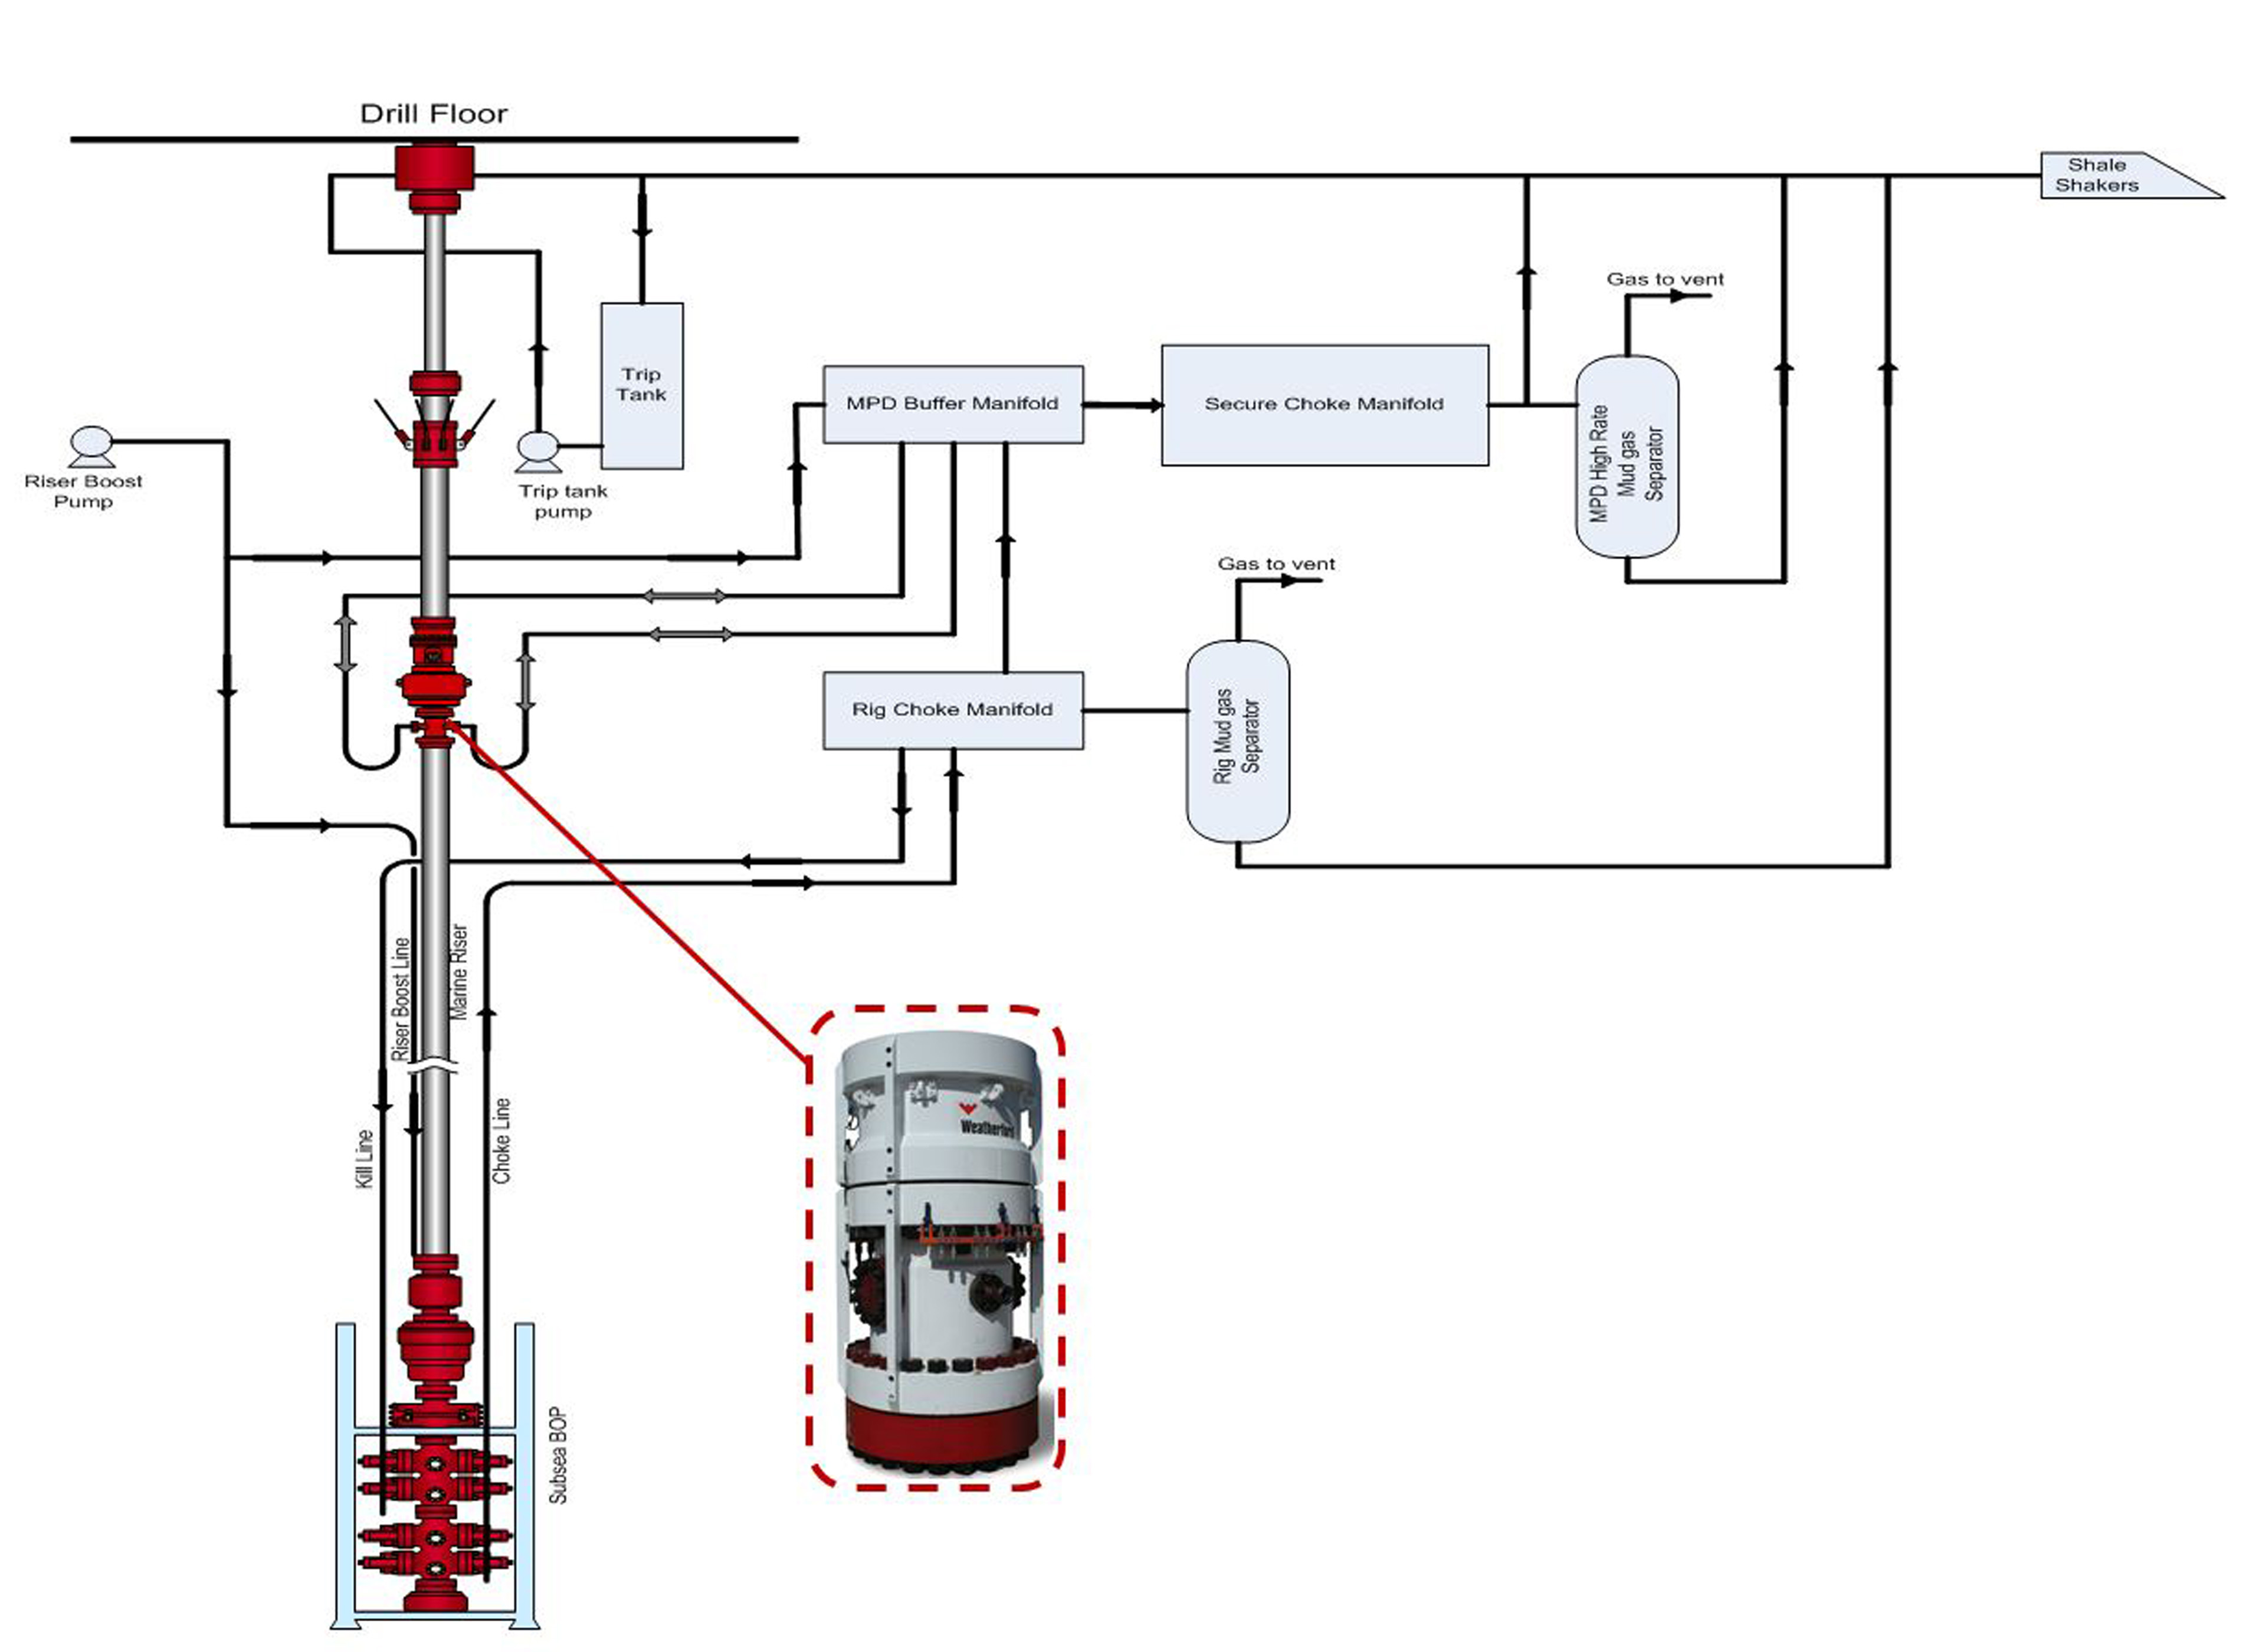 mpd opens door to new well control options in deepwater drilling submersible water pump wiring diagram figure 2 shows a generic piping and instrumentation diagram for a deepwater well using mpd